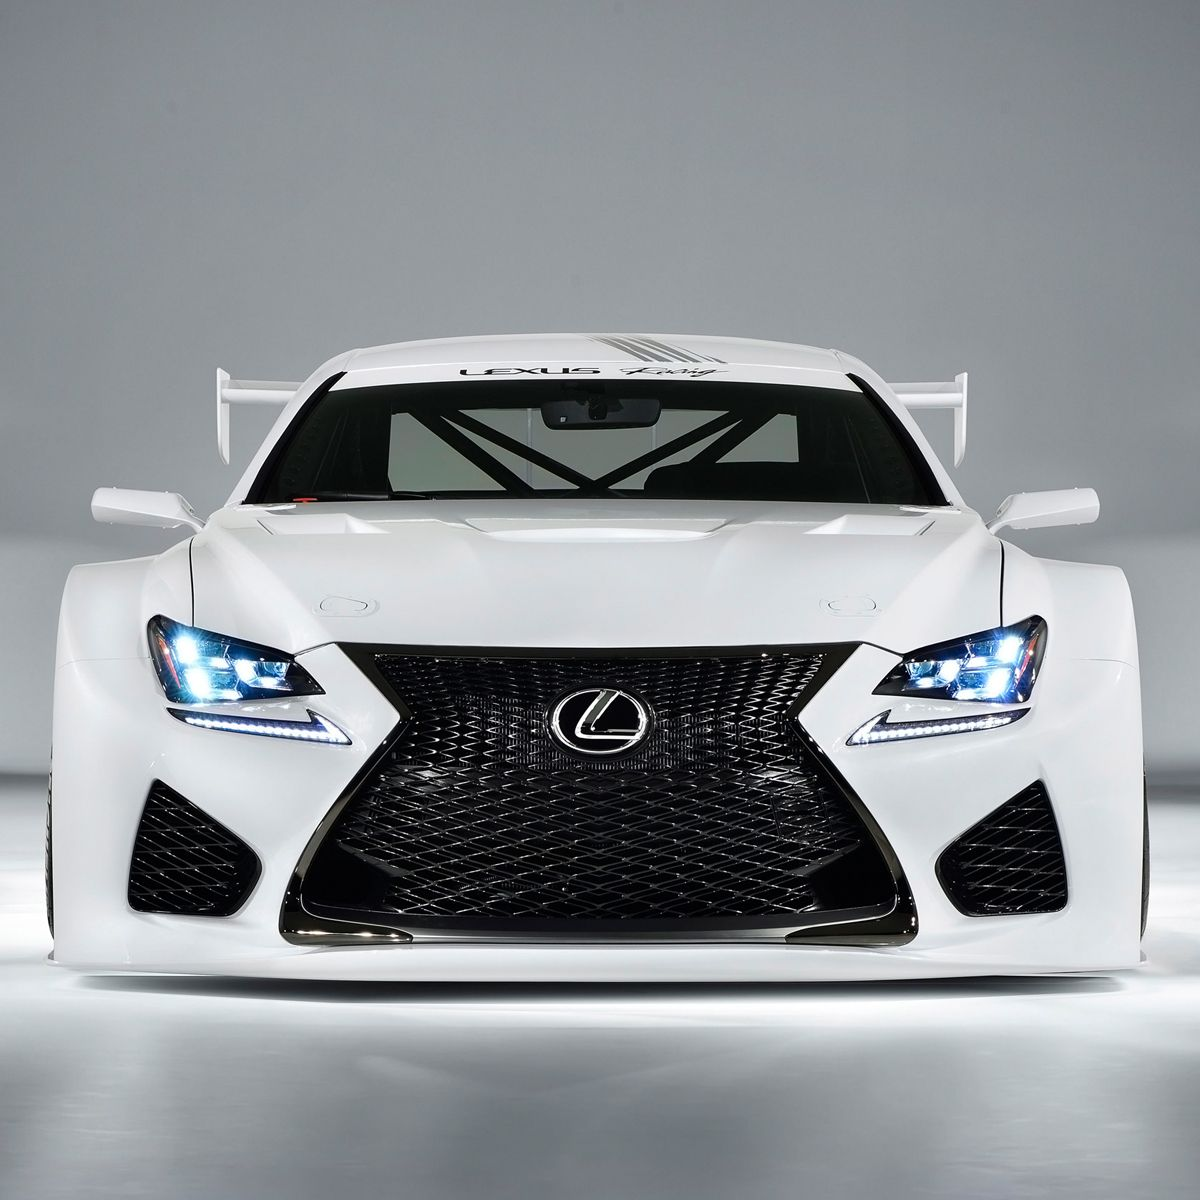 Lexus Rcf 2015 Price: Very Balanced And Interesting Design. Use